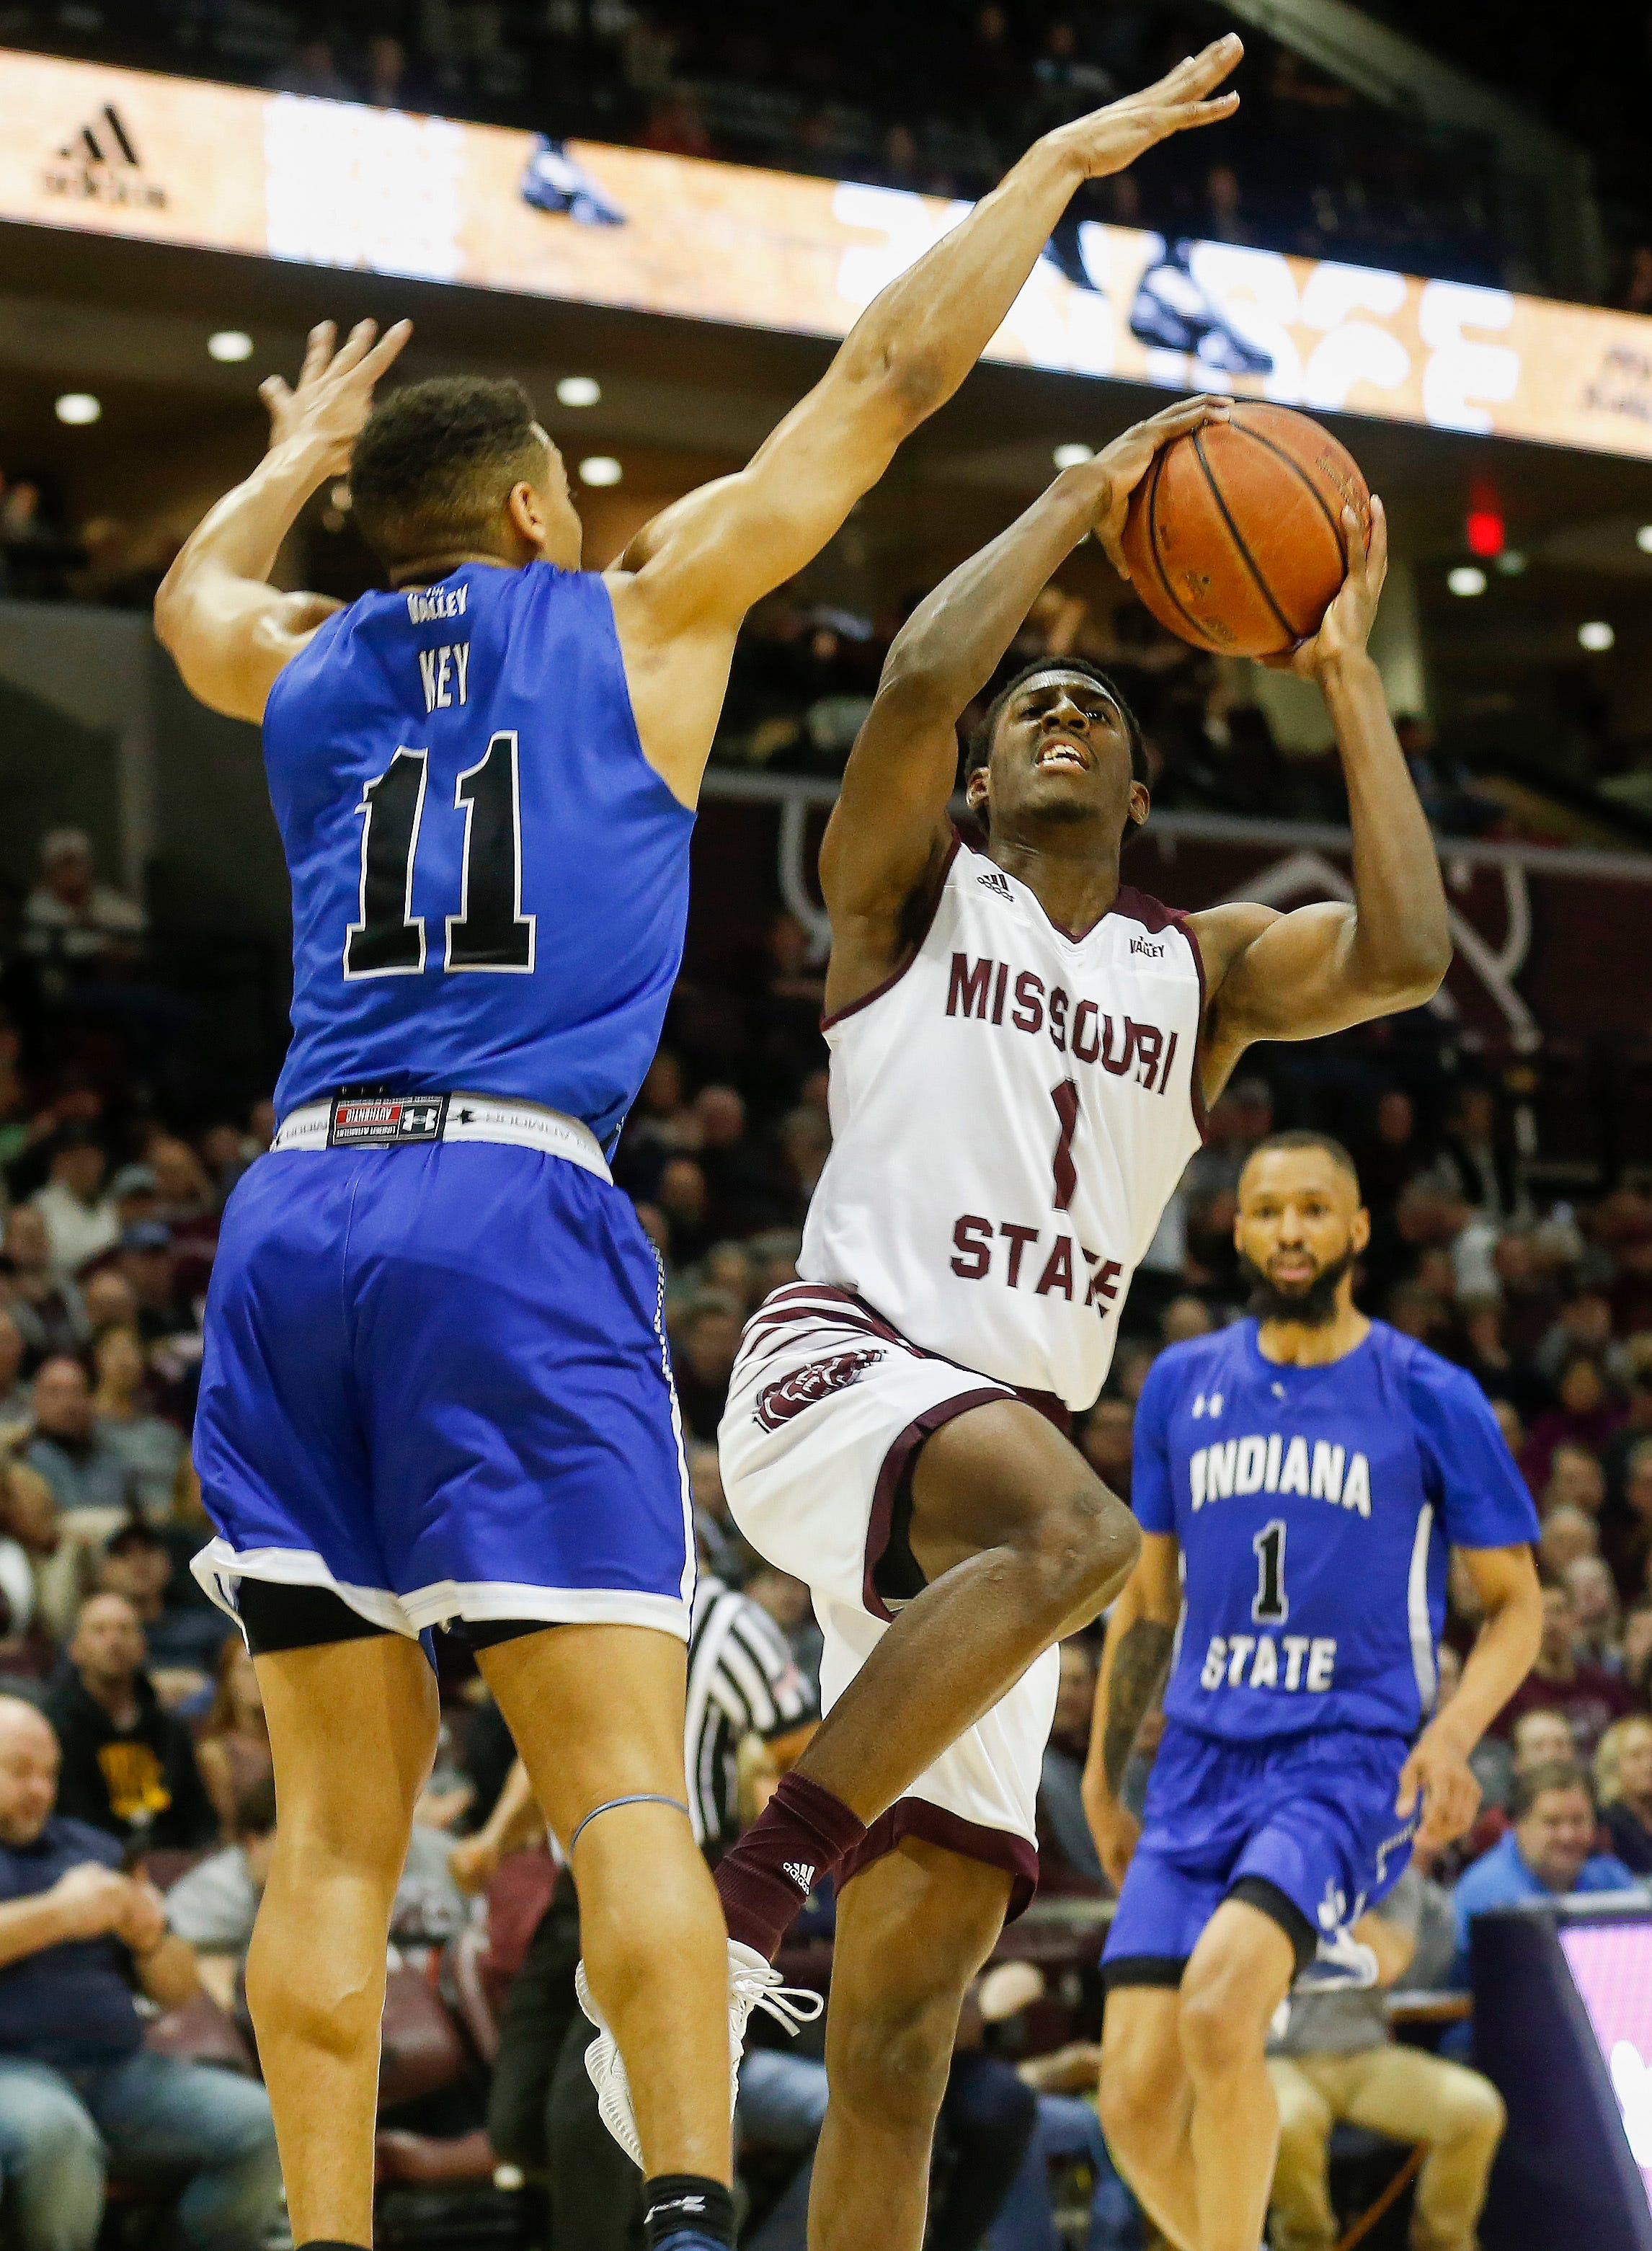 Keandre Cook, of Missouri State, goes up for the shot during the Bears' game against Indiana State at JQH Arena on Saturday, Feb. 23, 2019.